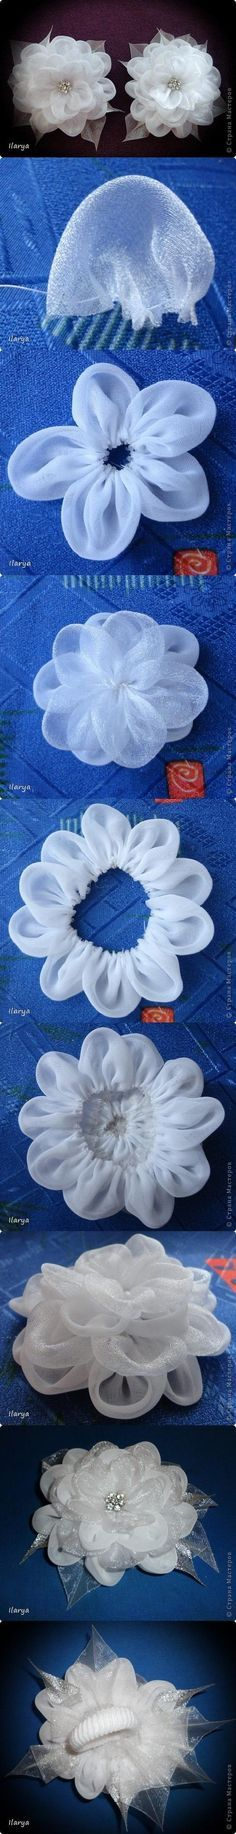 DIY Fabric Lust Flower DIY Projects This would be so cute for a hair pin! Cloth Flowers, Felt Flowers, Diy Flowers, Fabric Flowers, Paper Flowers, Flower Diy, Organza Flowers, Ribbon Flower, Pretty Flowers